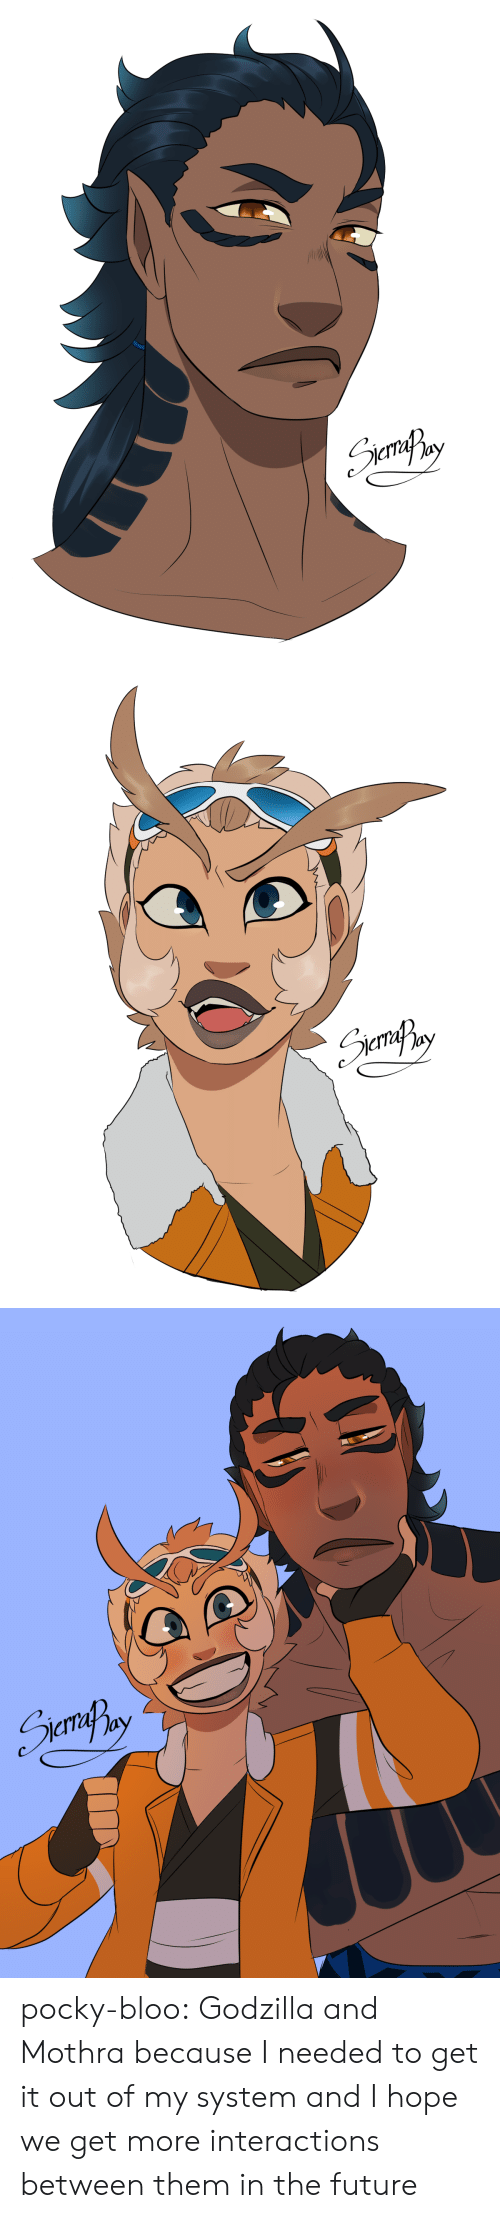 Future, Godzilla, and Tumblr: Senily   кпвy   SemafPny pocky-bloo:    Godzilla and Mothra because I needed to get it out of my system and I hope we get more interactions between them in the future